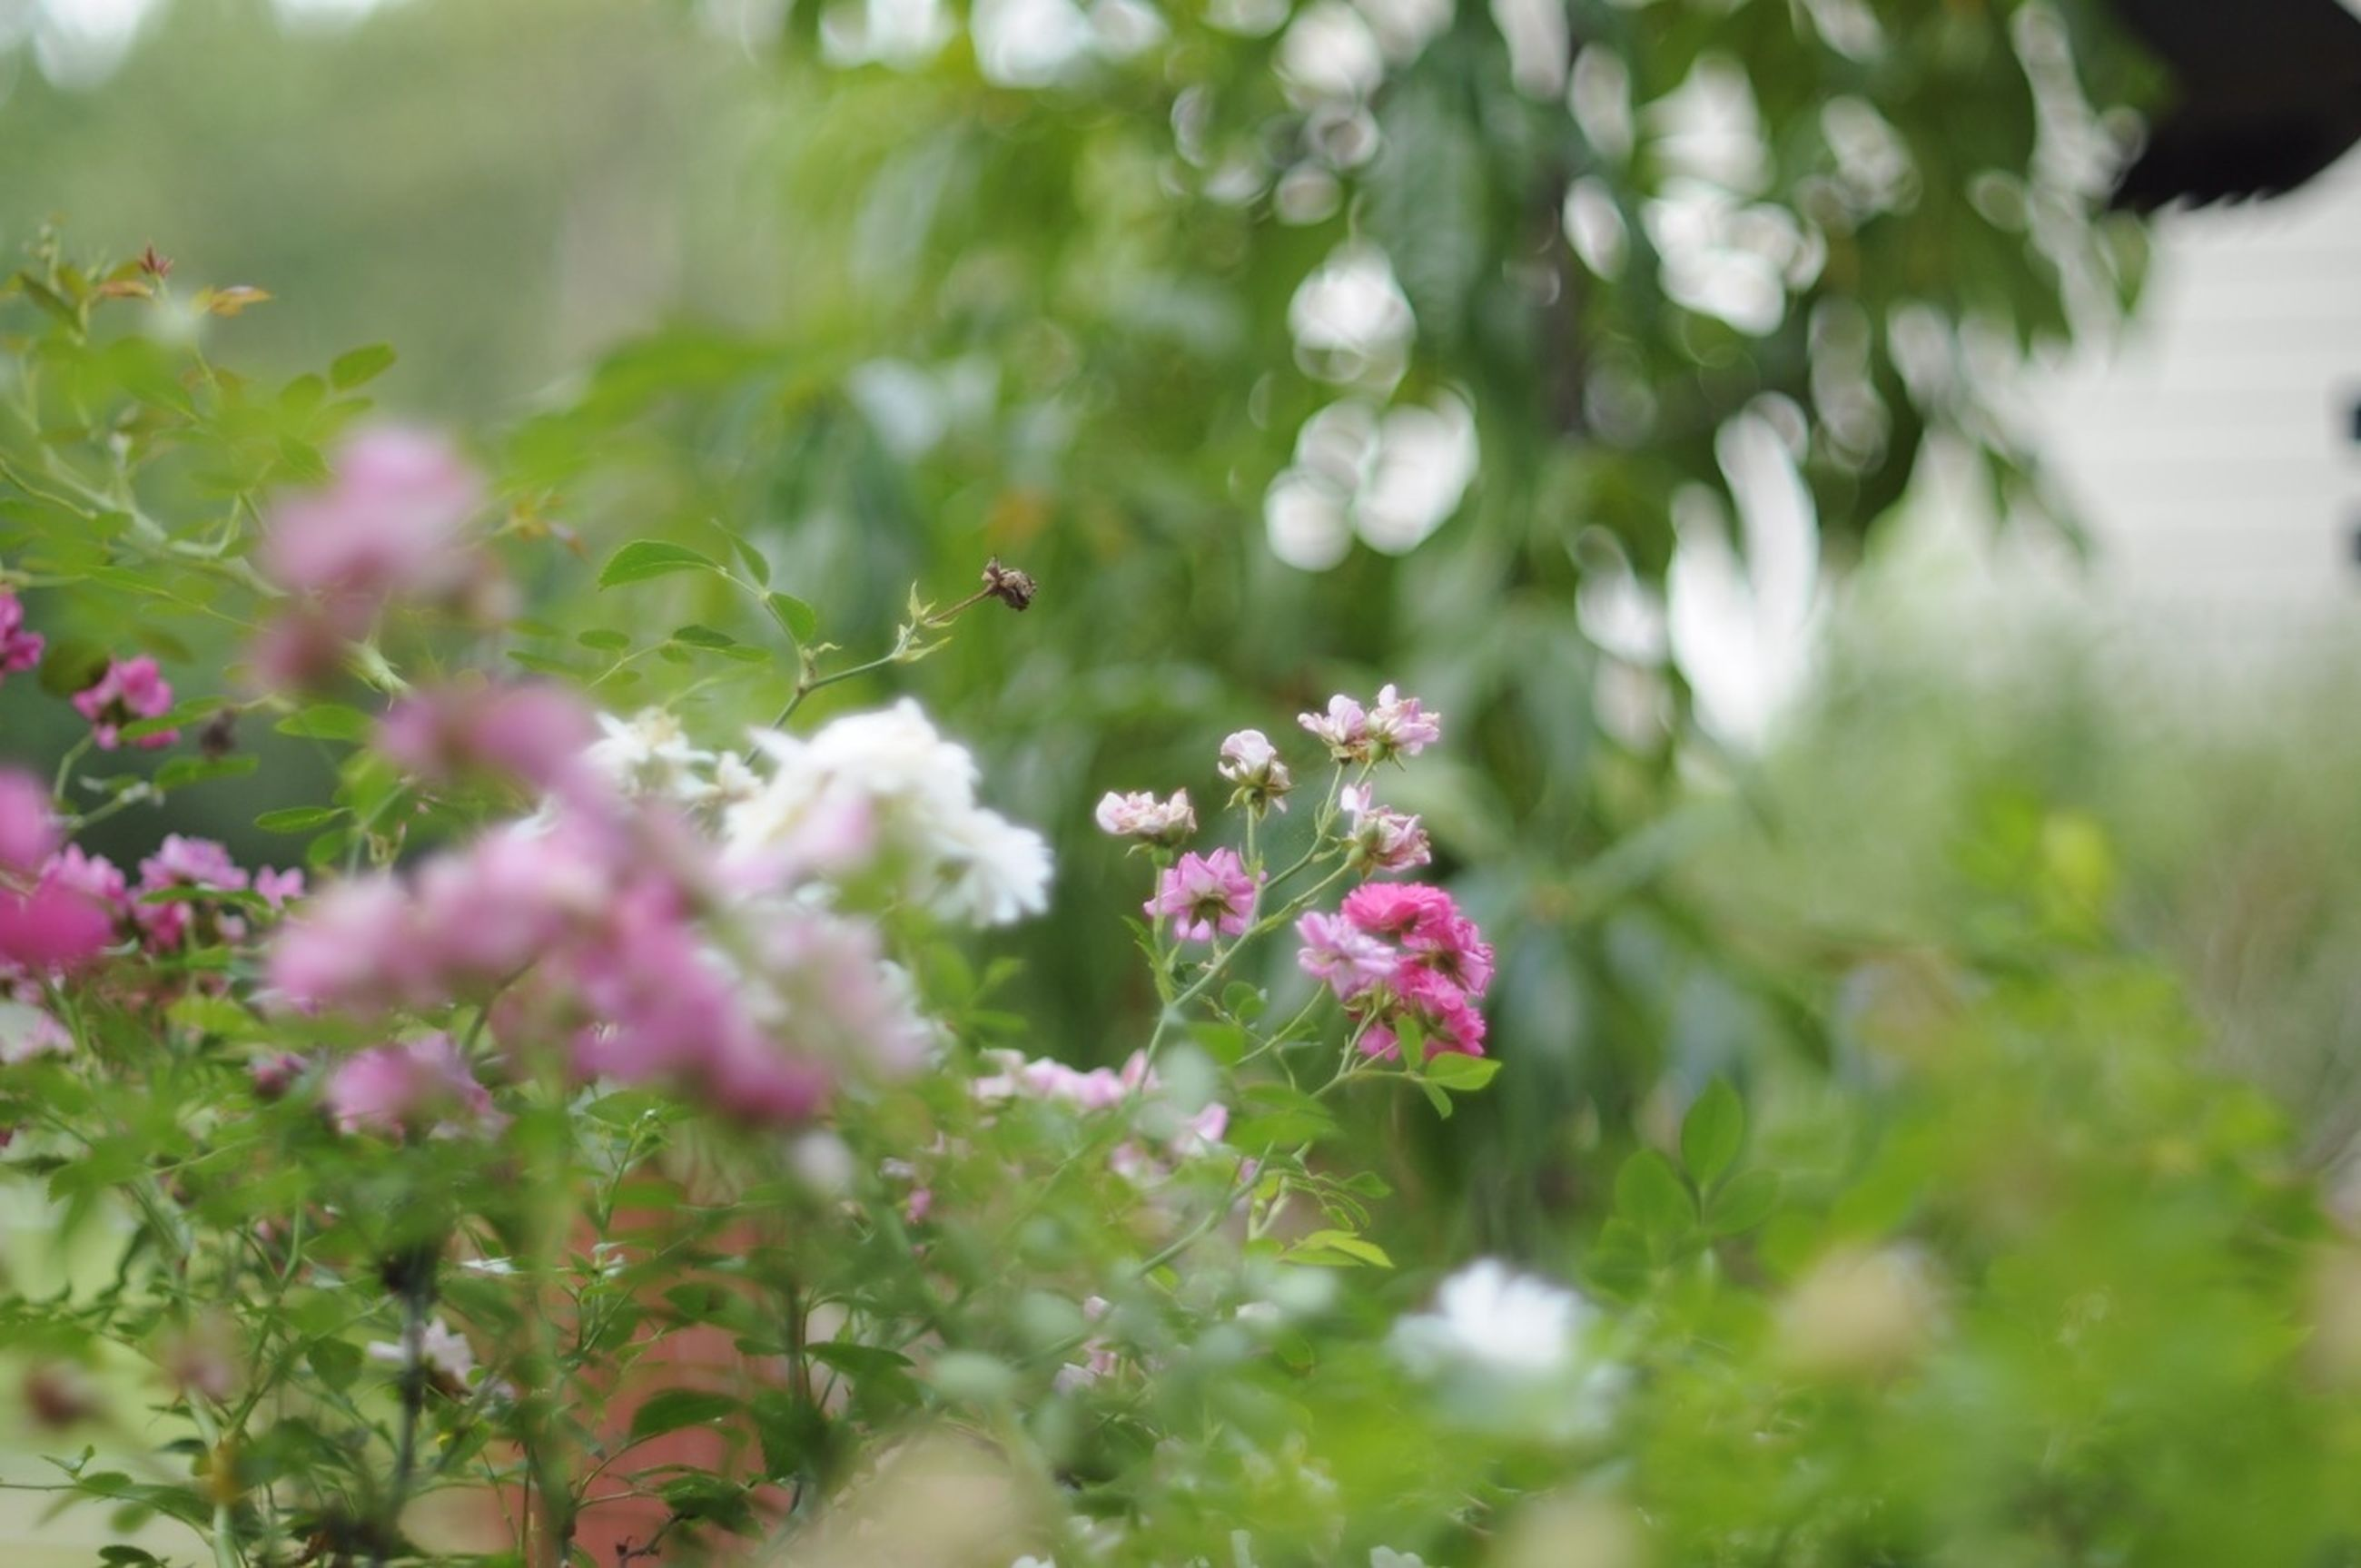 flower, growth, freshness, plant, focus on foreground, fragility, beauty in nature, nature, selective focus, close-up, leaf, petal, blooming, pink color, green color, stem, day, tree, outdoors, park - man made space